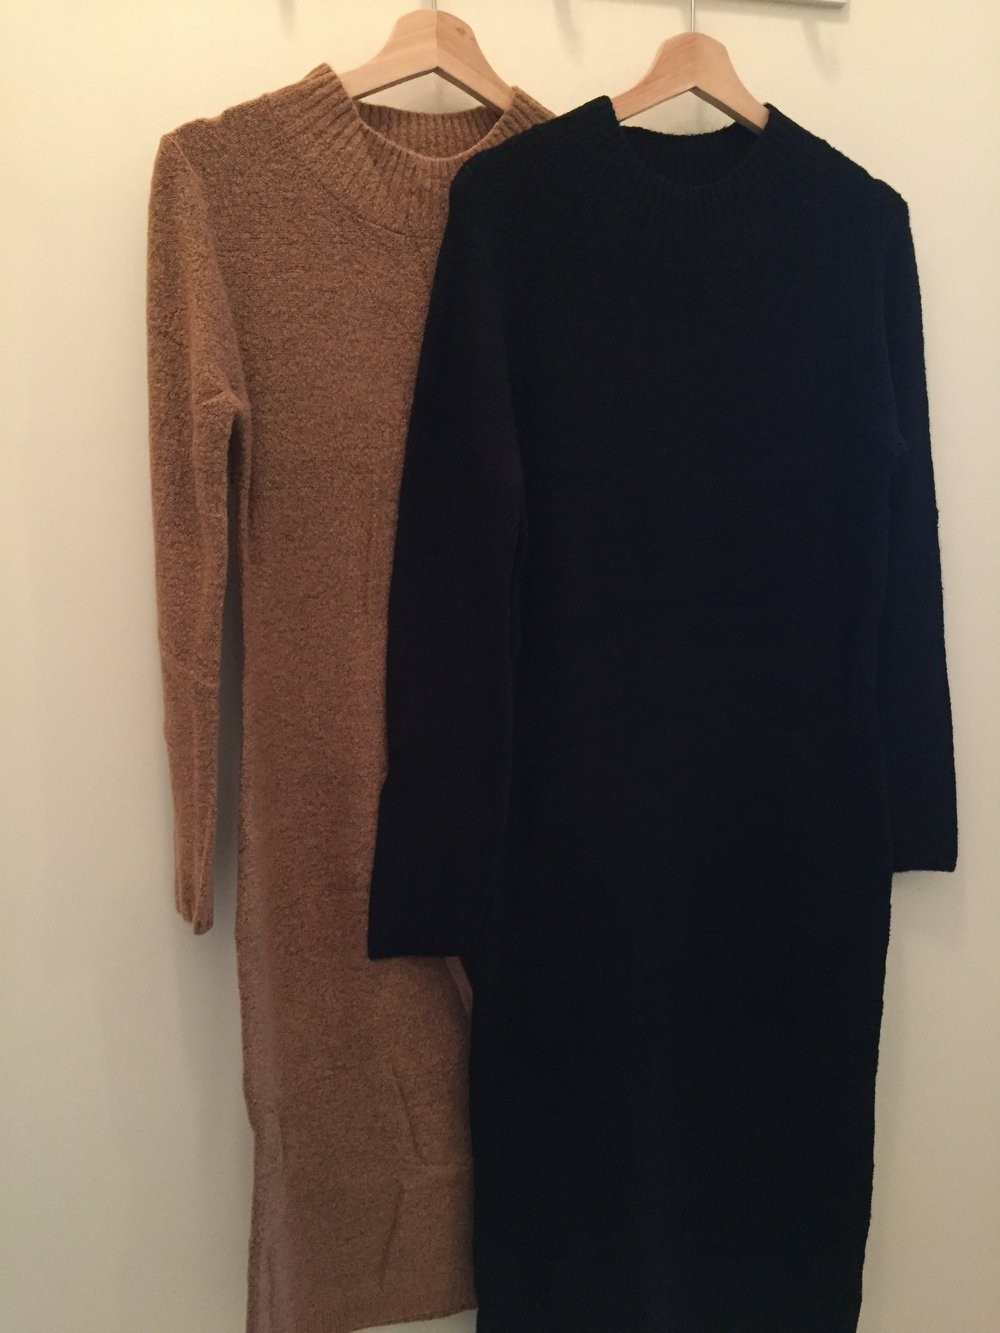 Mock Neck Sweater Dress ($42 Red, Camel, and Black)